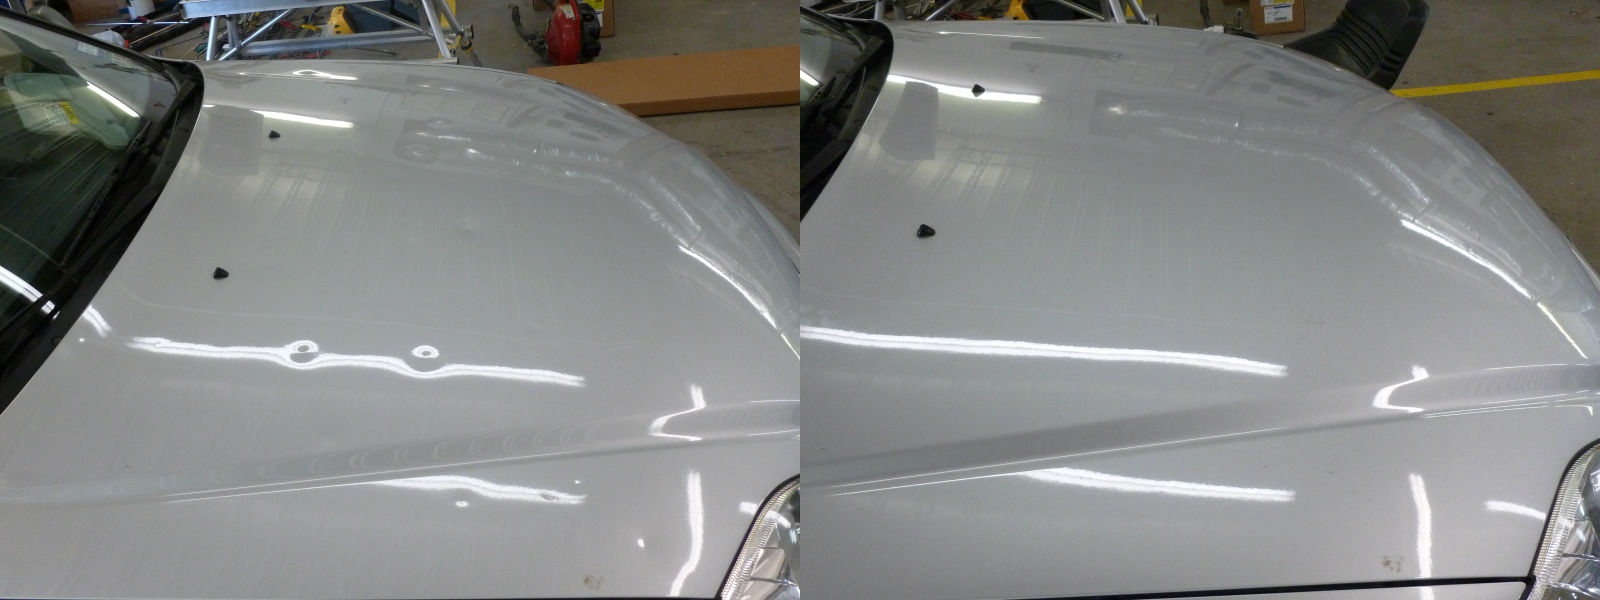 2000 Honda Civic With Hail Damage Before And After